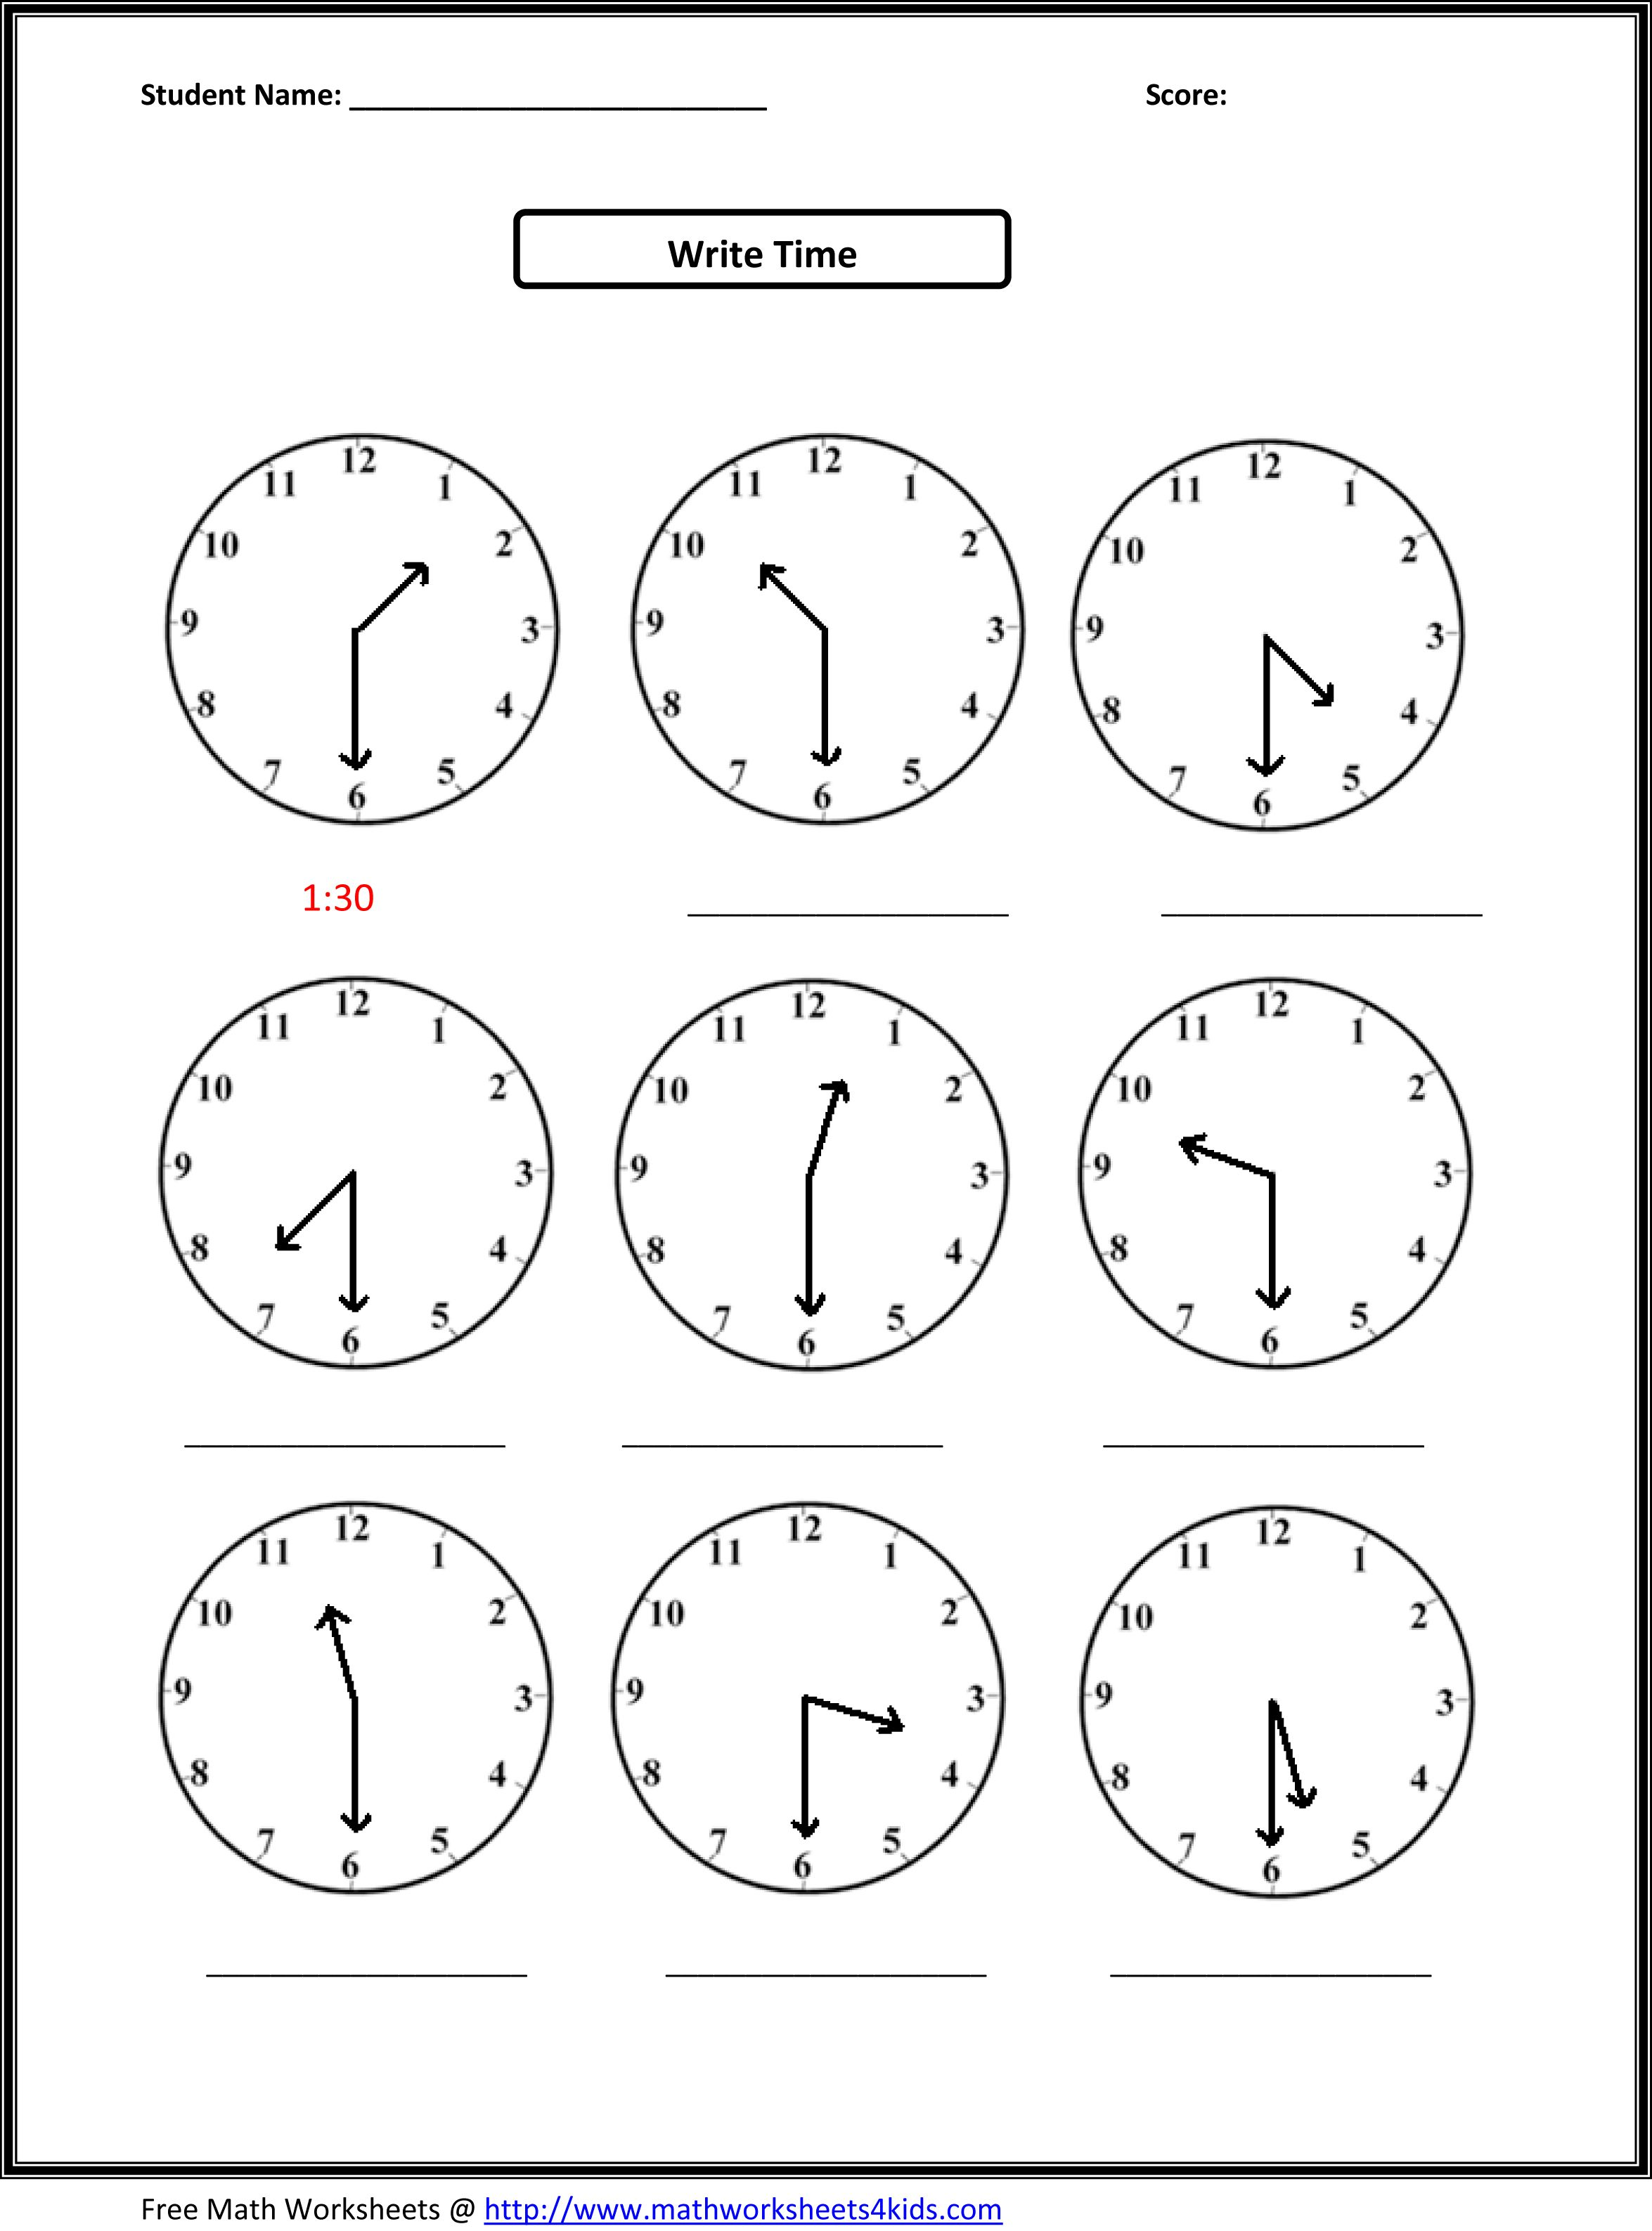 Proatmealus  Gorgeous Worksheet On Time For Grade   Reocurent With Excellent Free Printable Telling Time Worksheets Nd Grade  Reocurent With Extraordinary Preschool Learning Worksheets Also D And D Shapes Worksheet In Addition Linear Equation Worksheet And How To Merge Worksheets In Excel As Well As Capitalization Worksheets Middle School Additionally Place Value With Decimals Worksheets From Reocurentcom With Proatmealus  Excellent Worksheet On Time For Grade   Reocurent With Extraordinary Free Printable Telling Time Worksheets Nd Grade  Reocurent And Gorgeous Preschool Learning Worksheets Also D And D Shapes Worksheet In Addition Linear Equation Worksheet From Reocurentcom